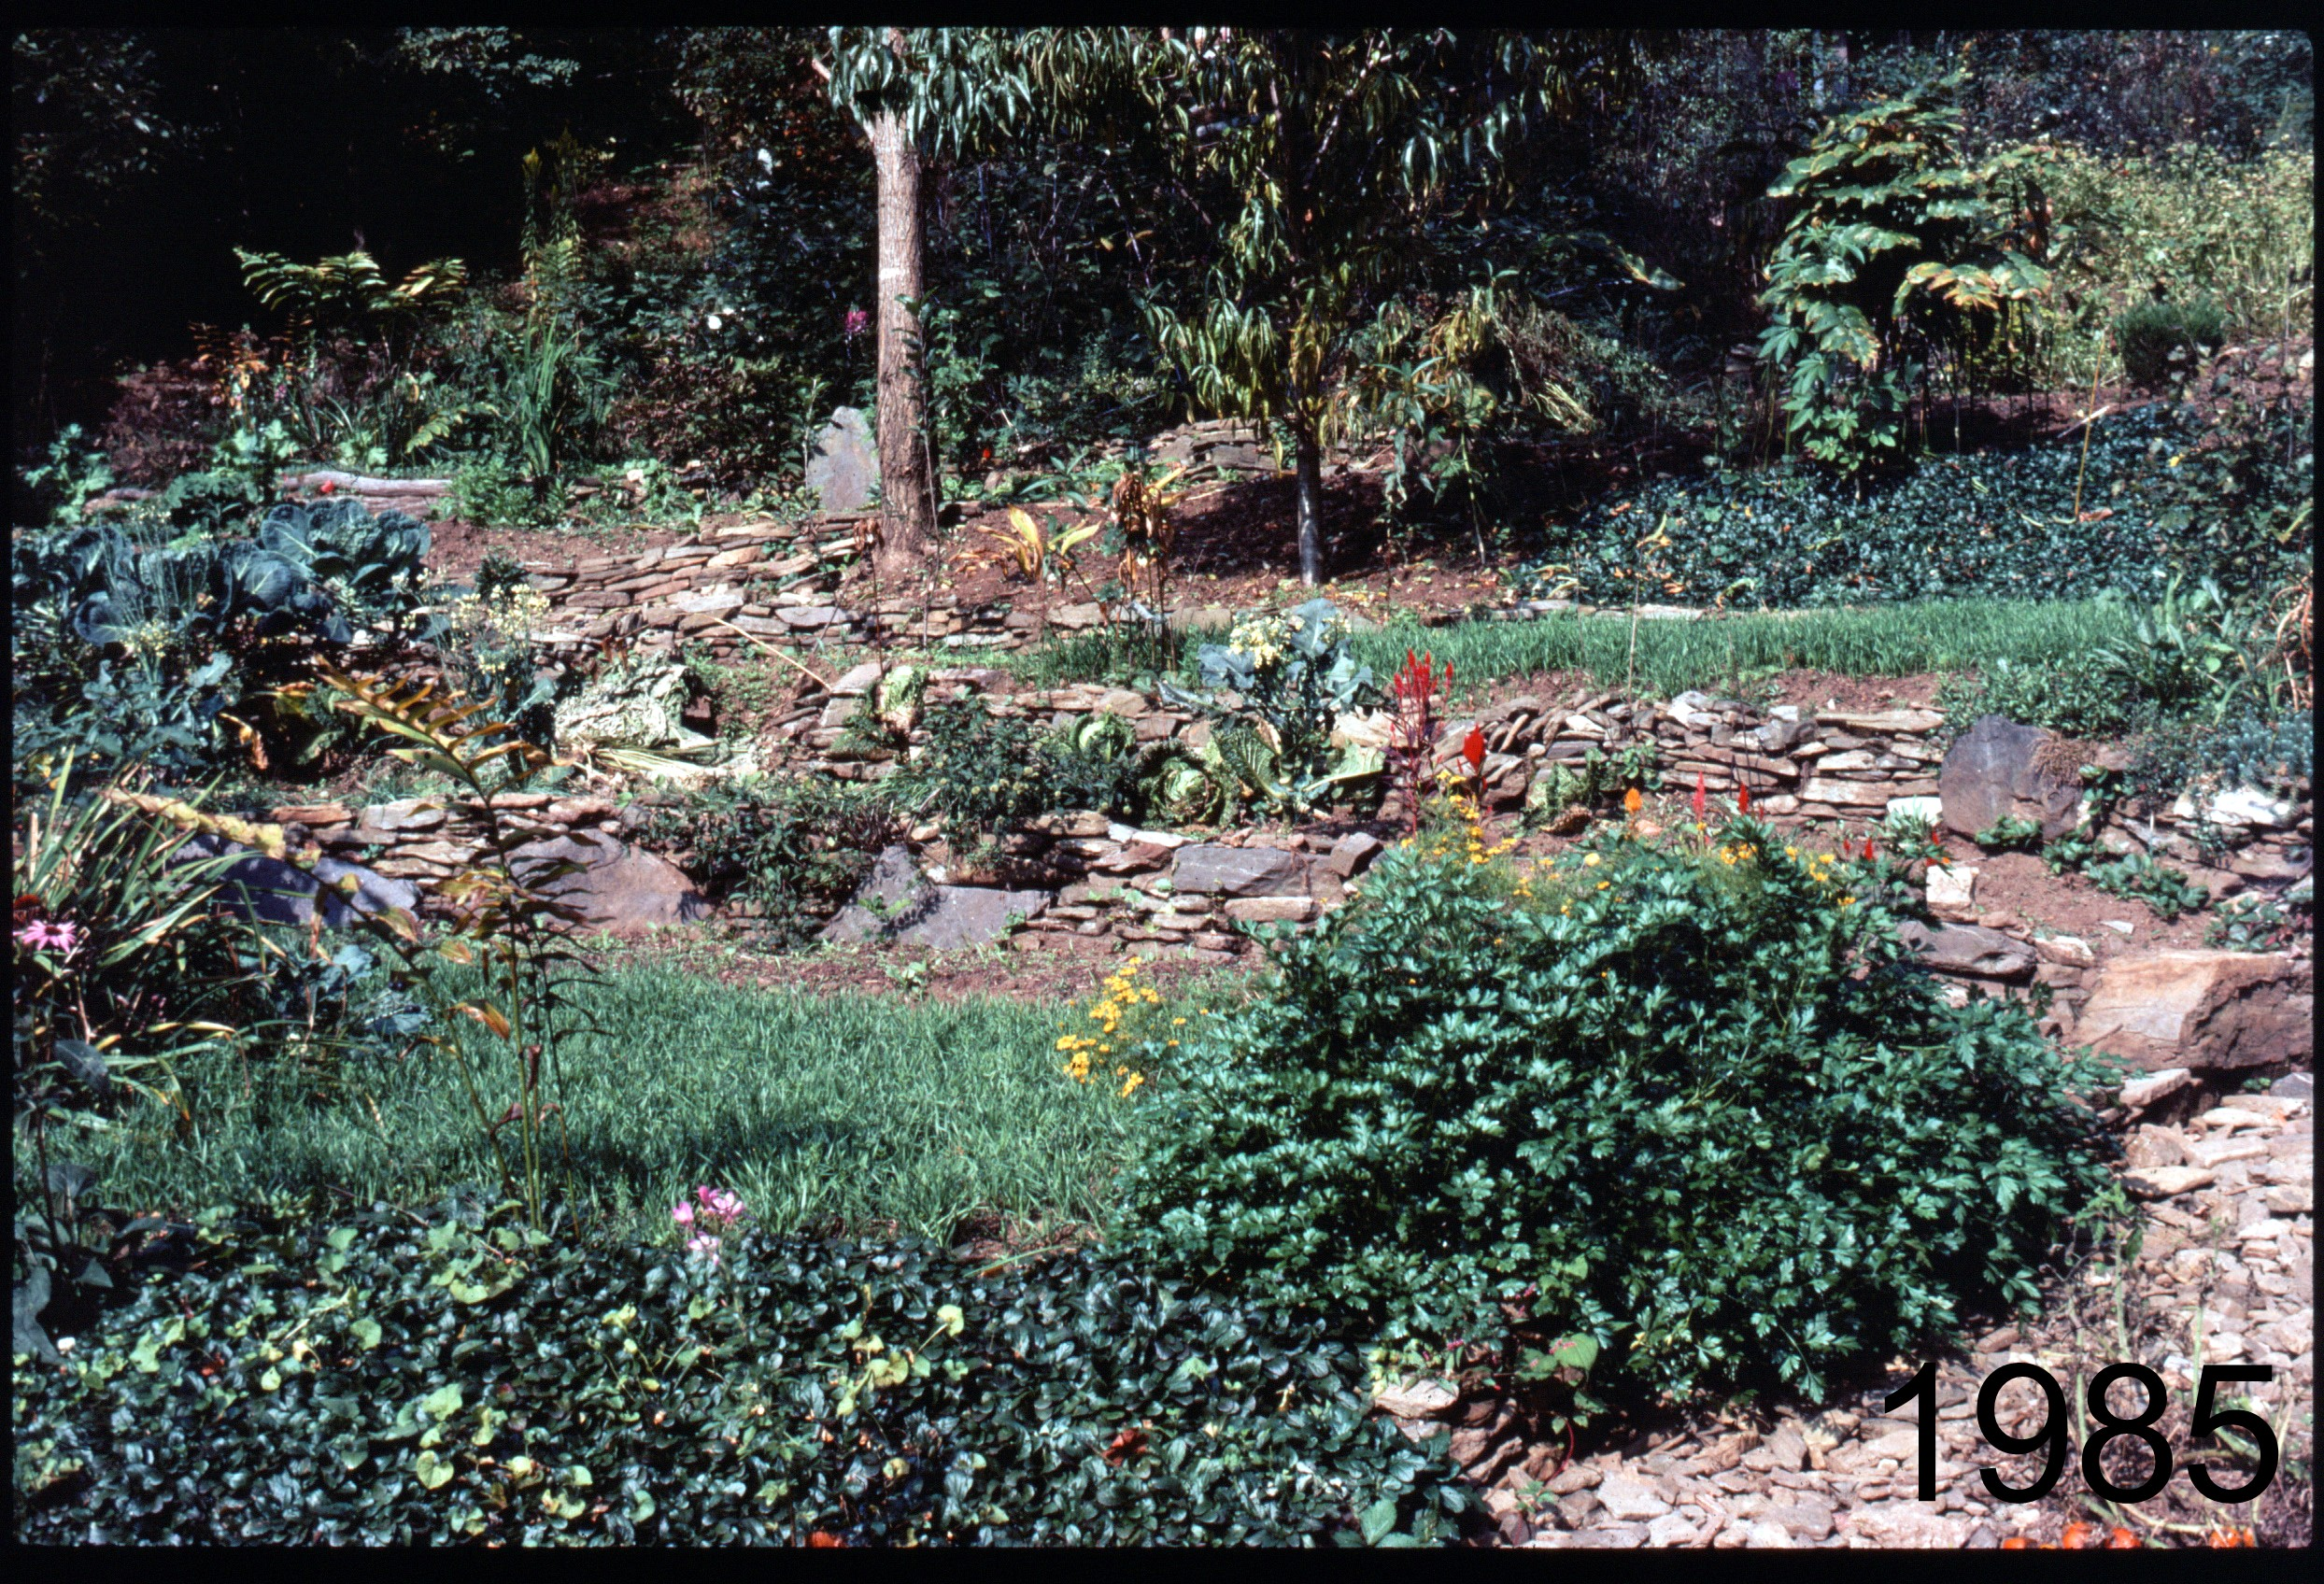 1985 gdn below cherry tree.jpg